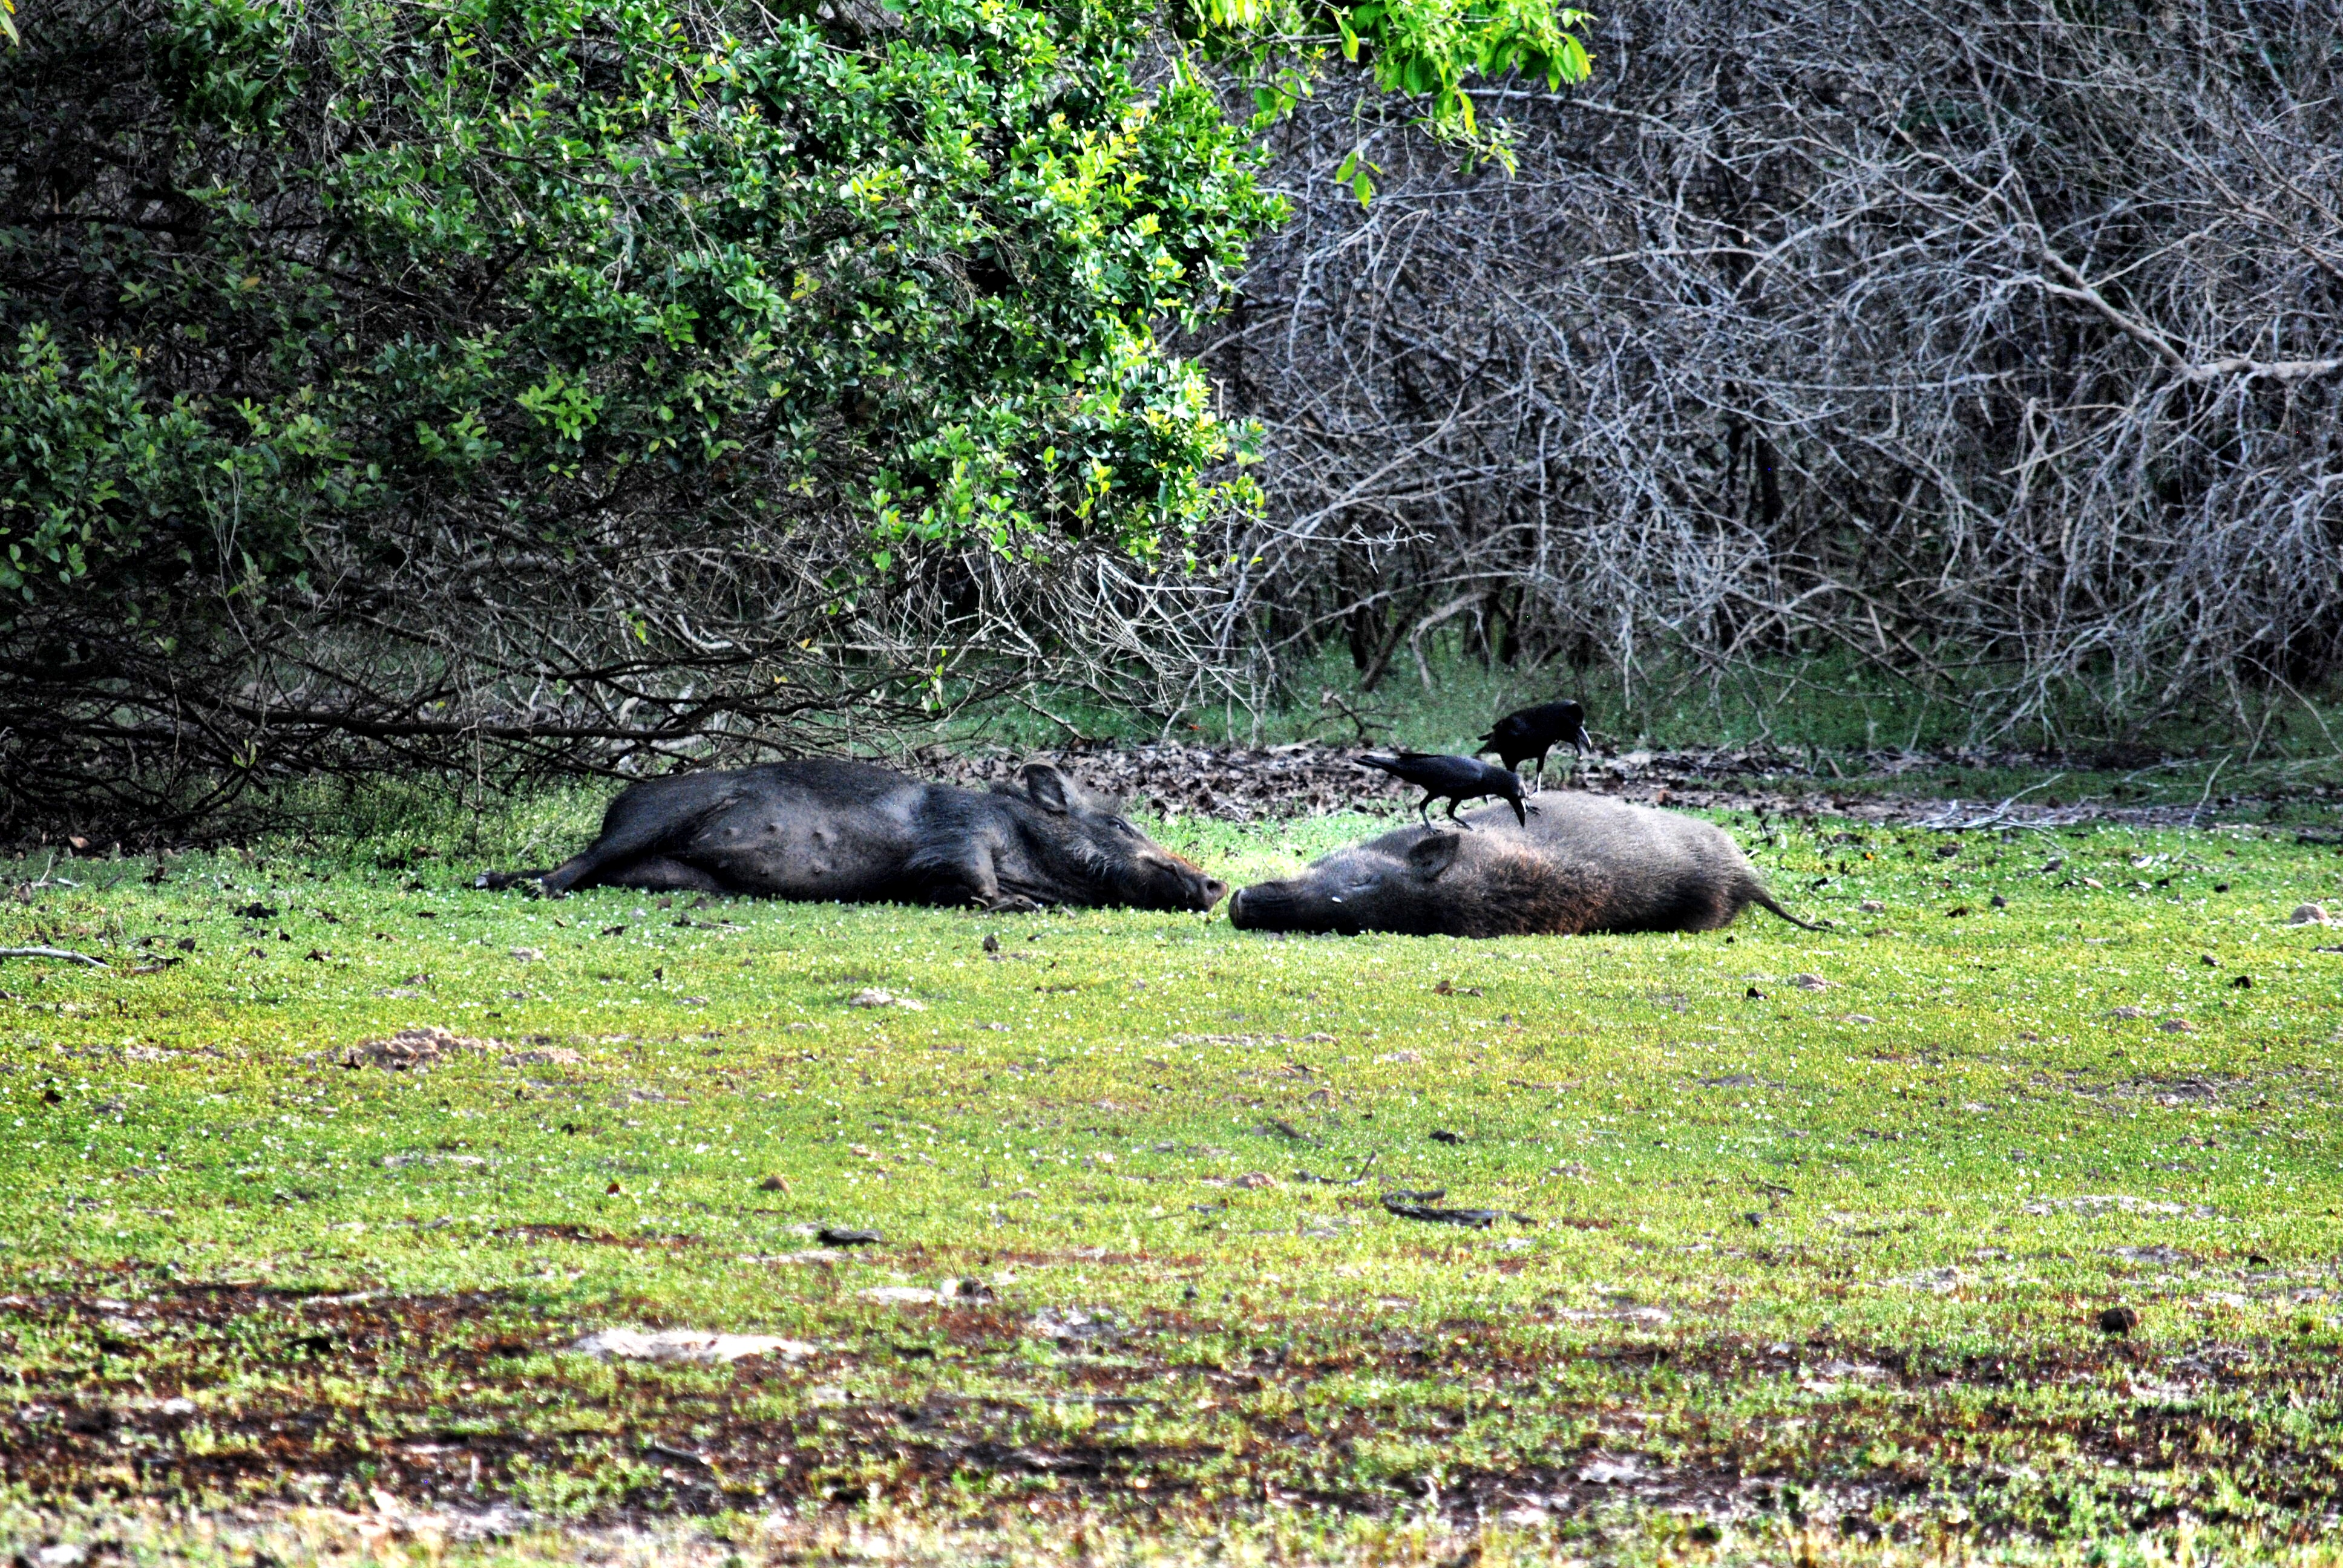 Wild Boar in Wilpattu National Park, Sri Lanka